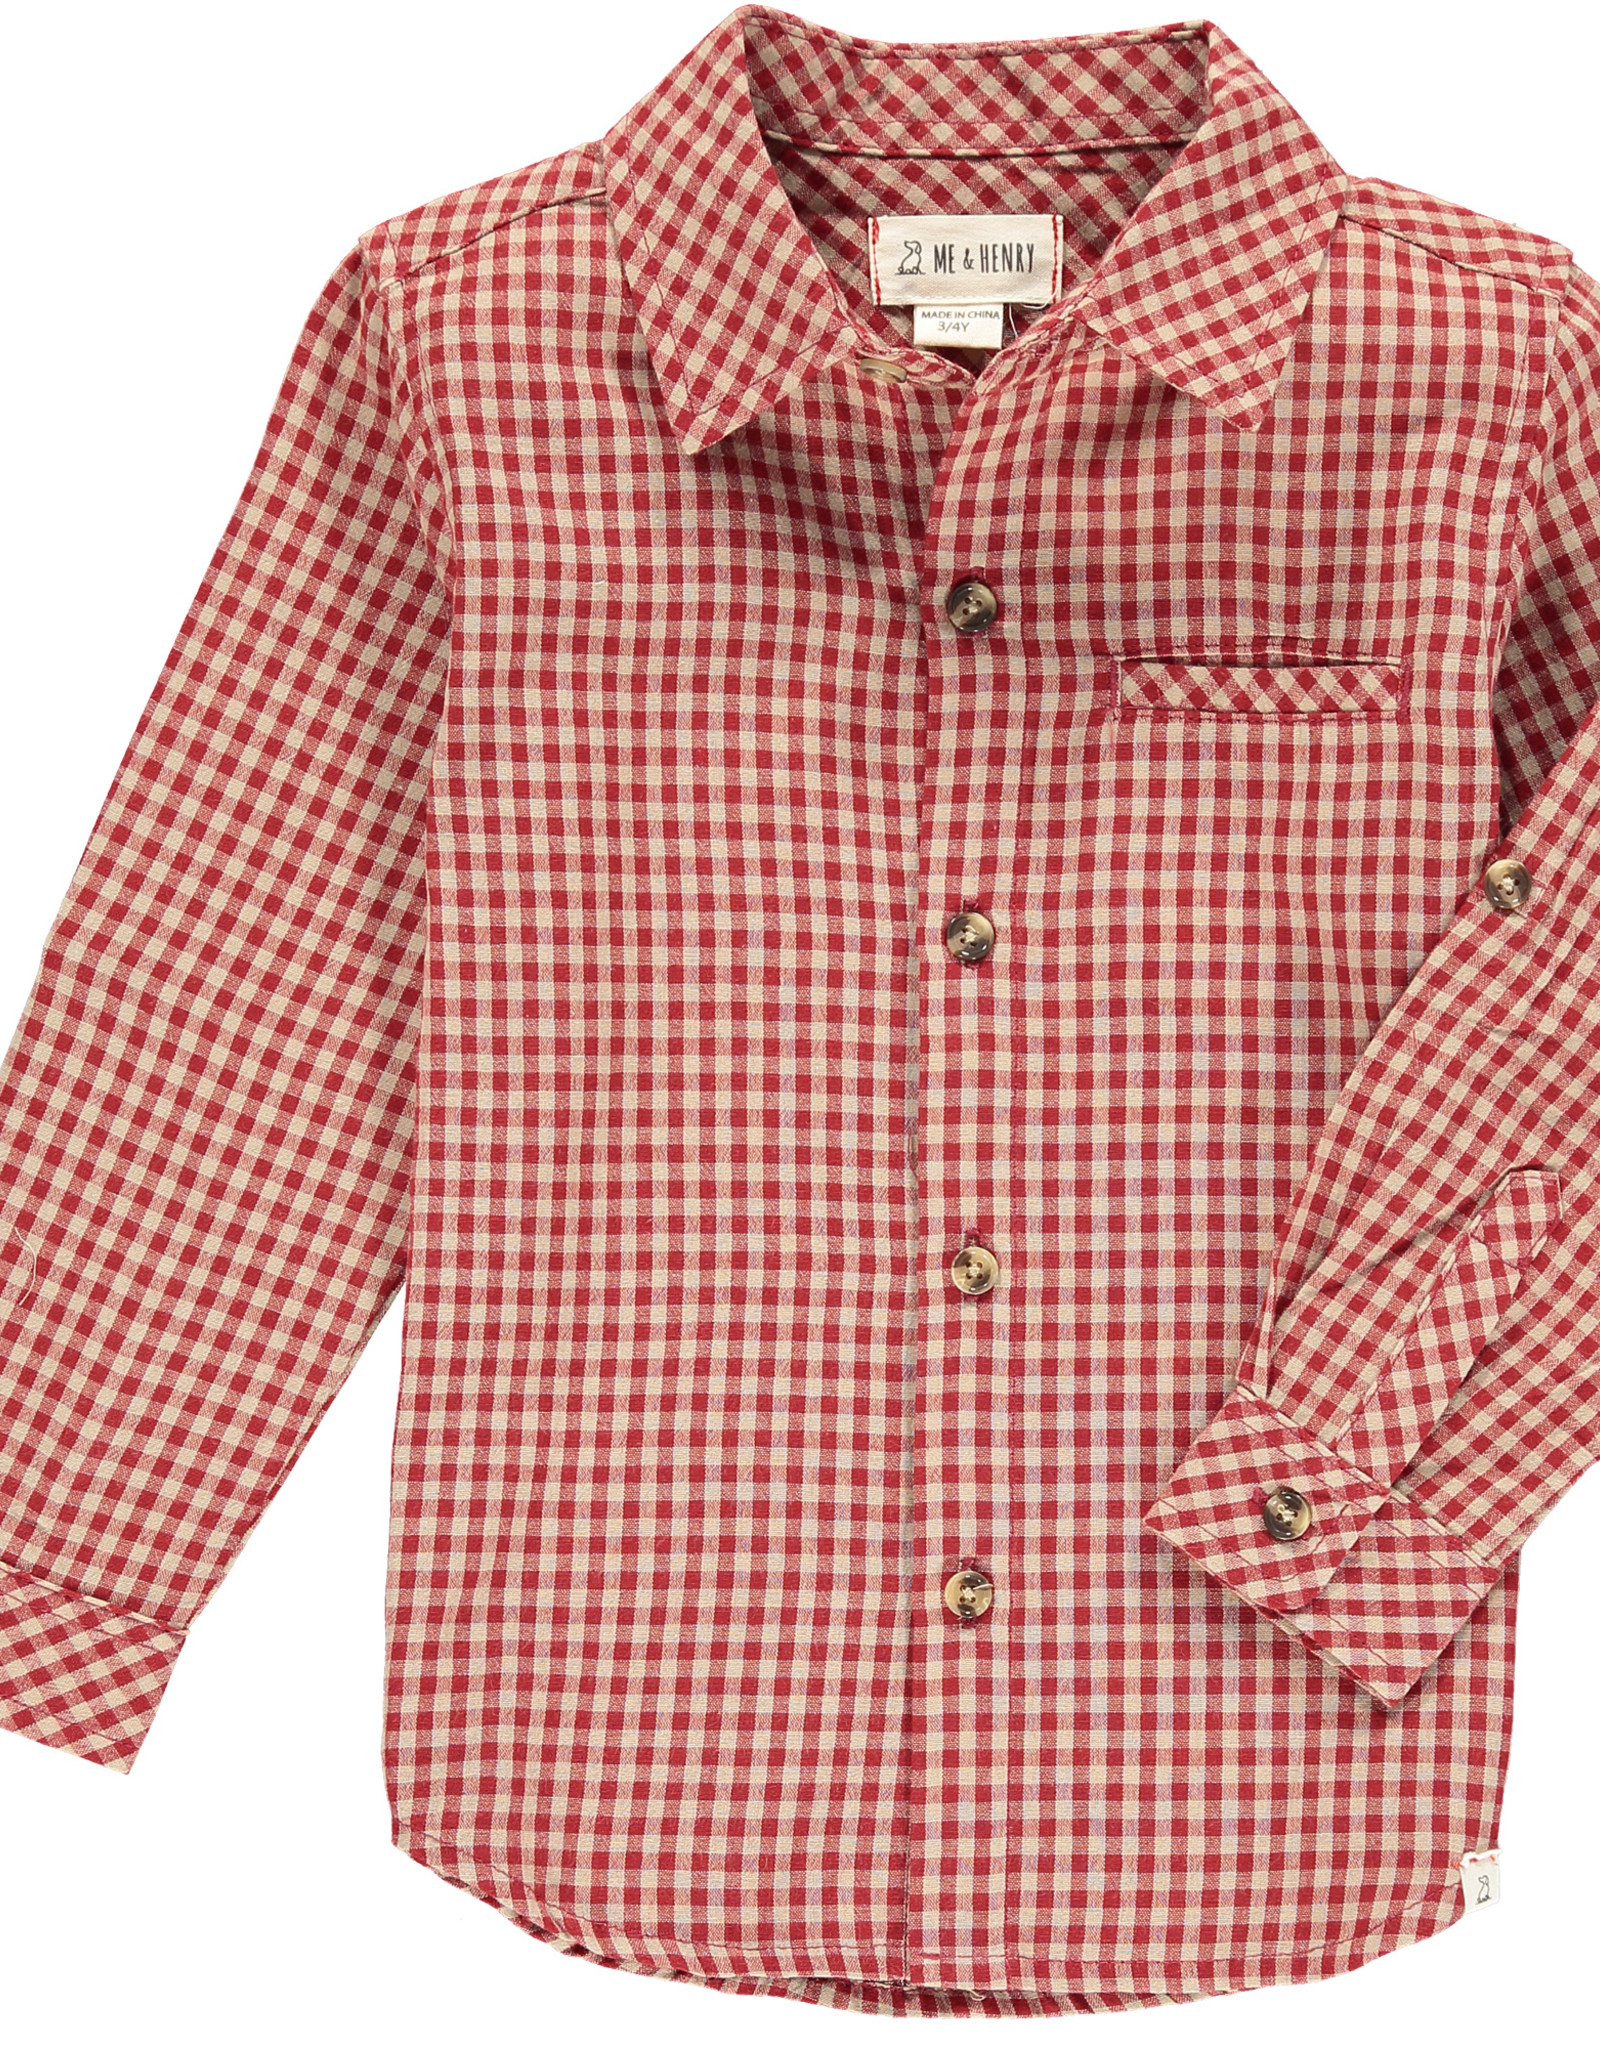 Me & Henry l/s button down- red plaid